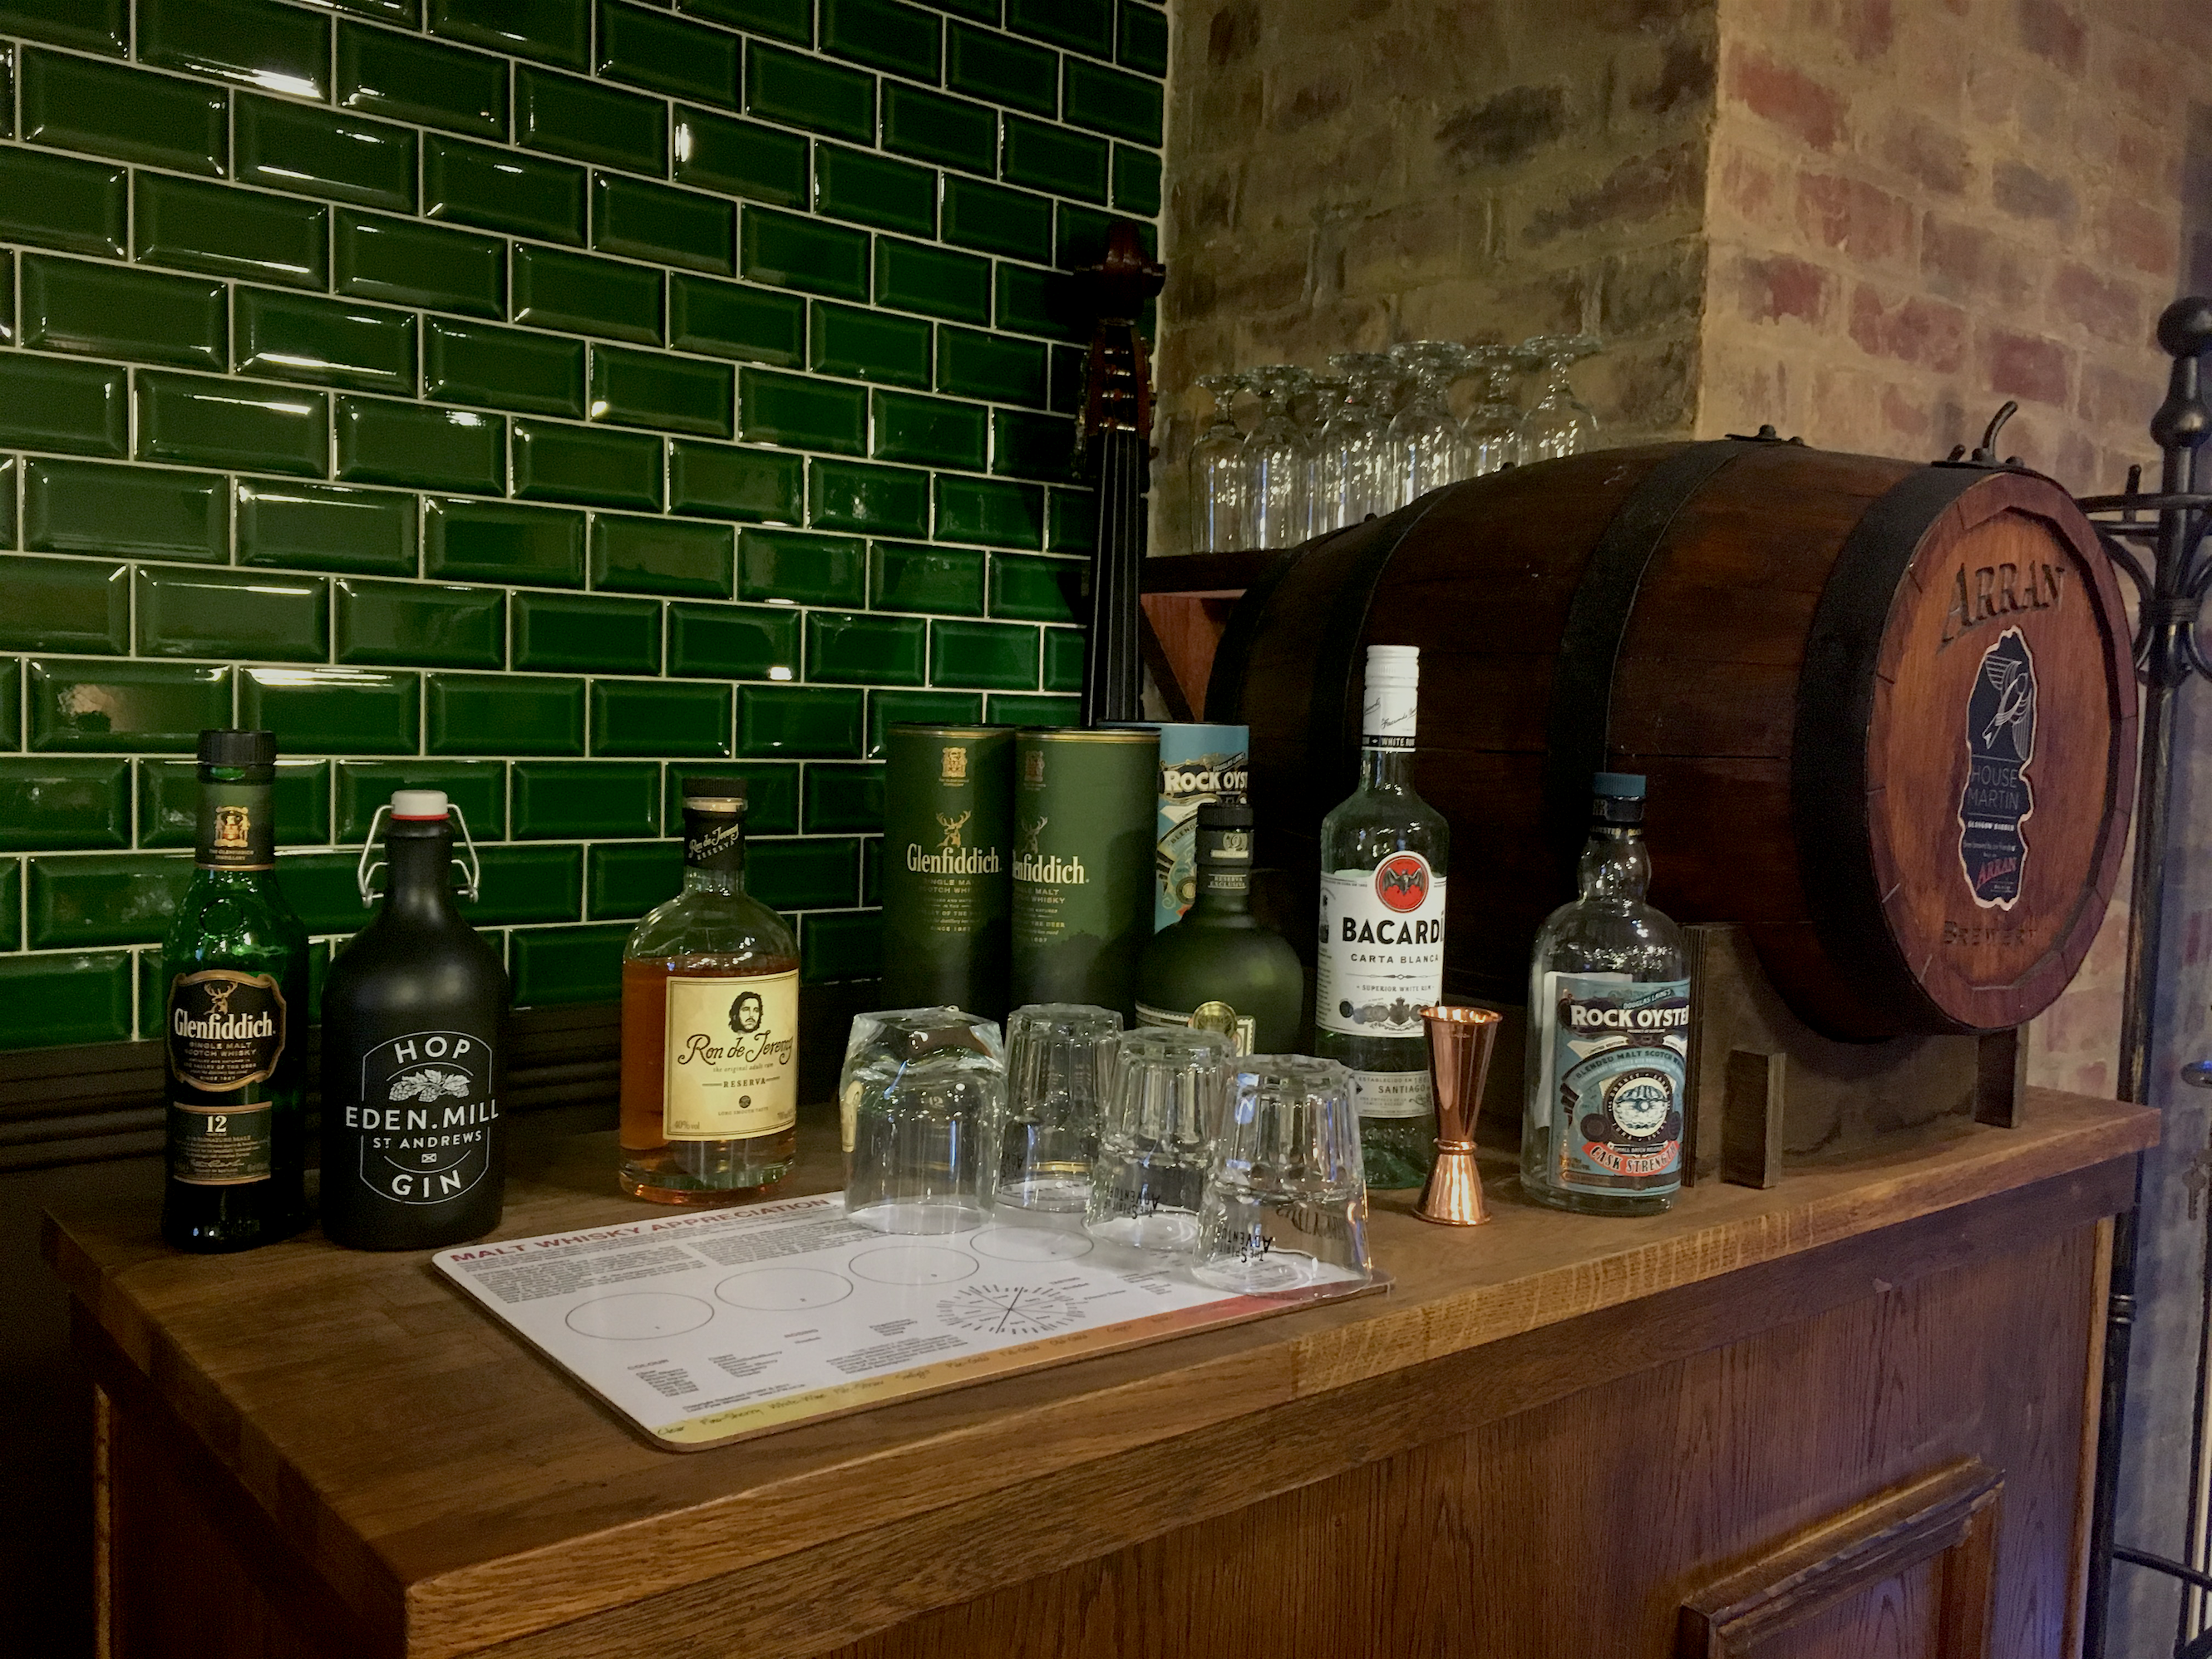 The whiskey and gin section of the shop